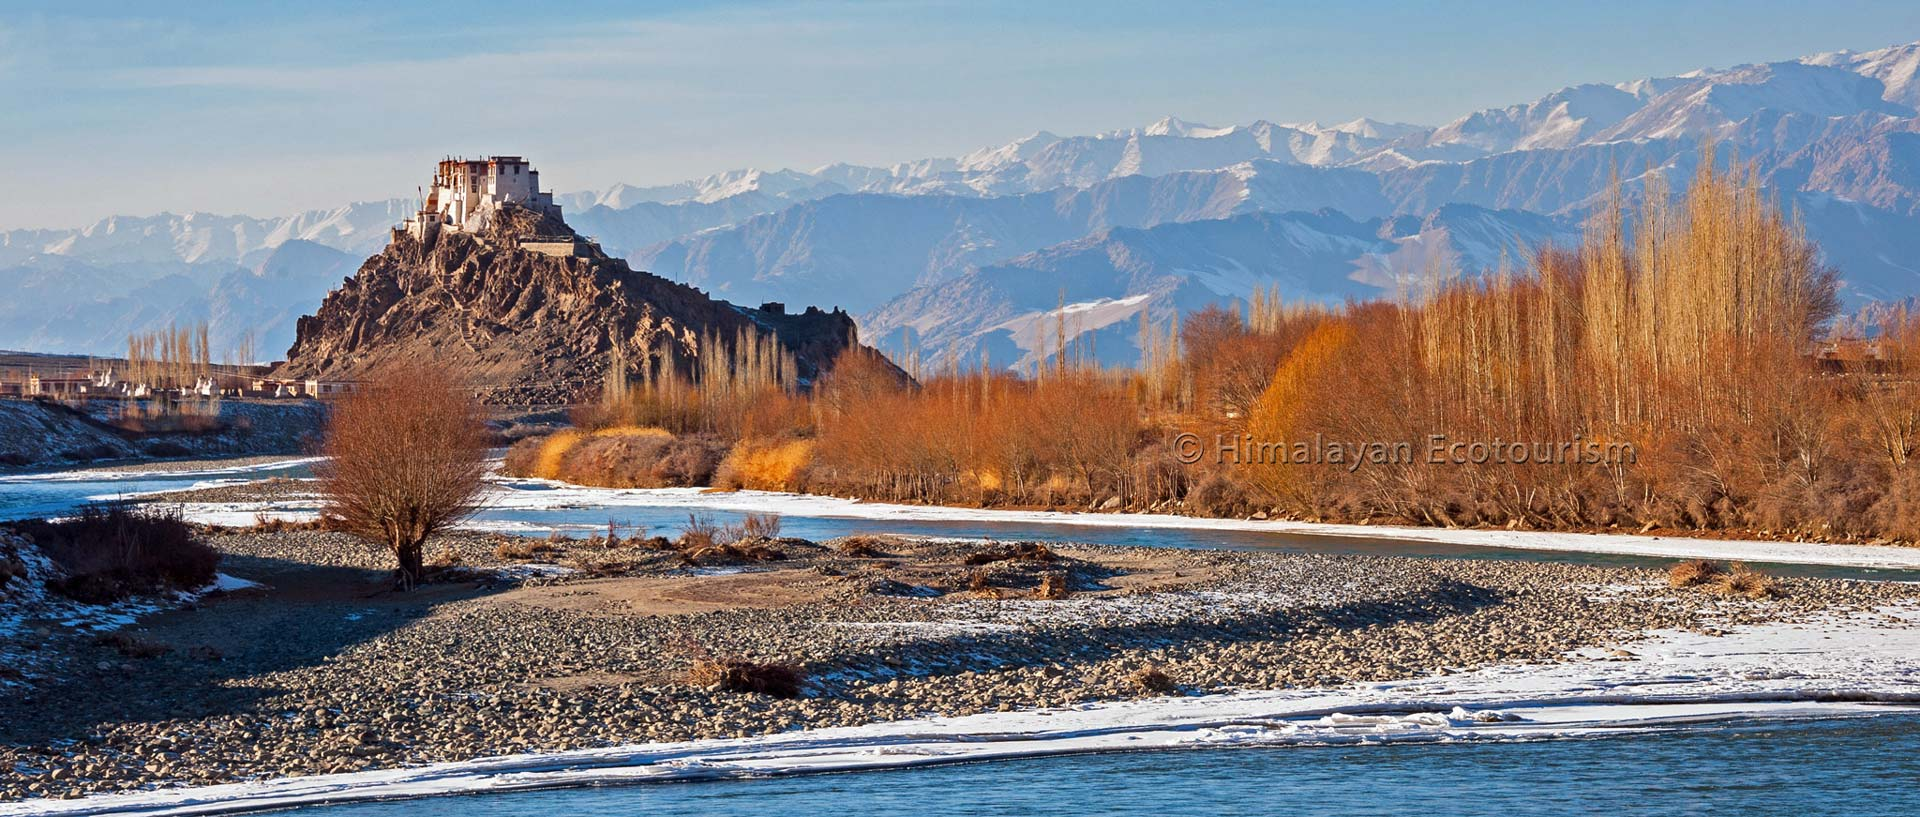 The Indus valley, Ladakh